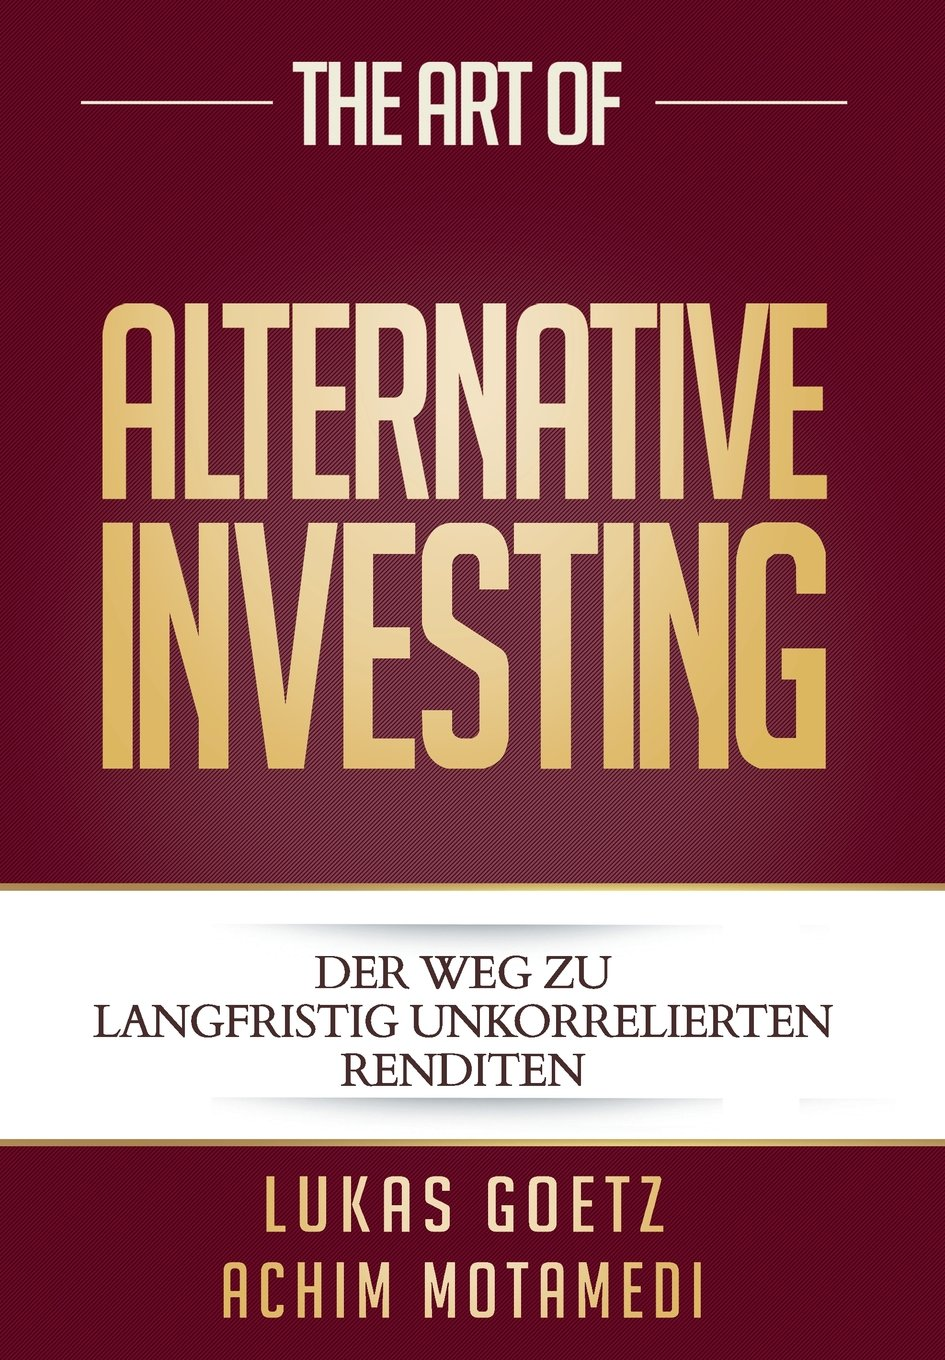 The Art of Alternative Investing (German Edition)